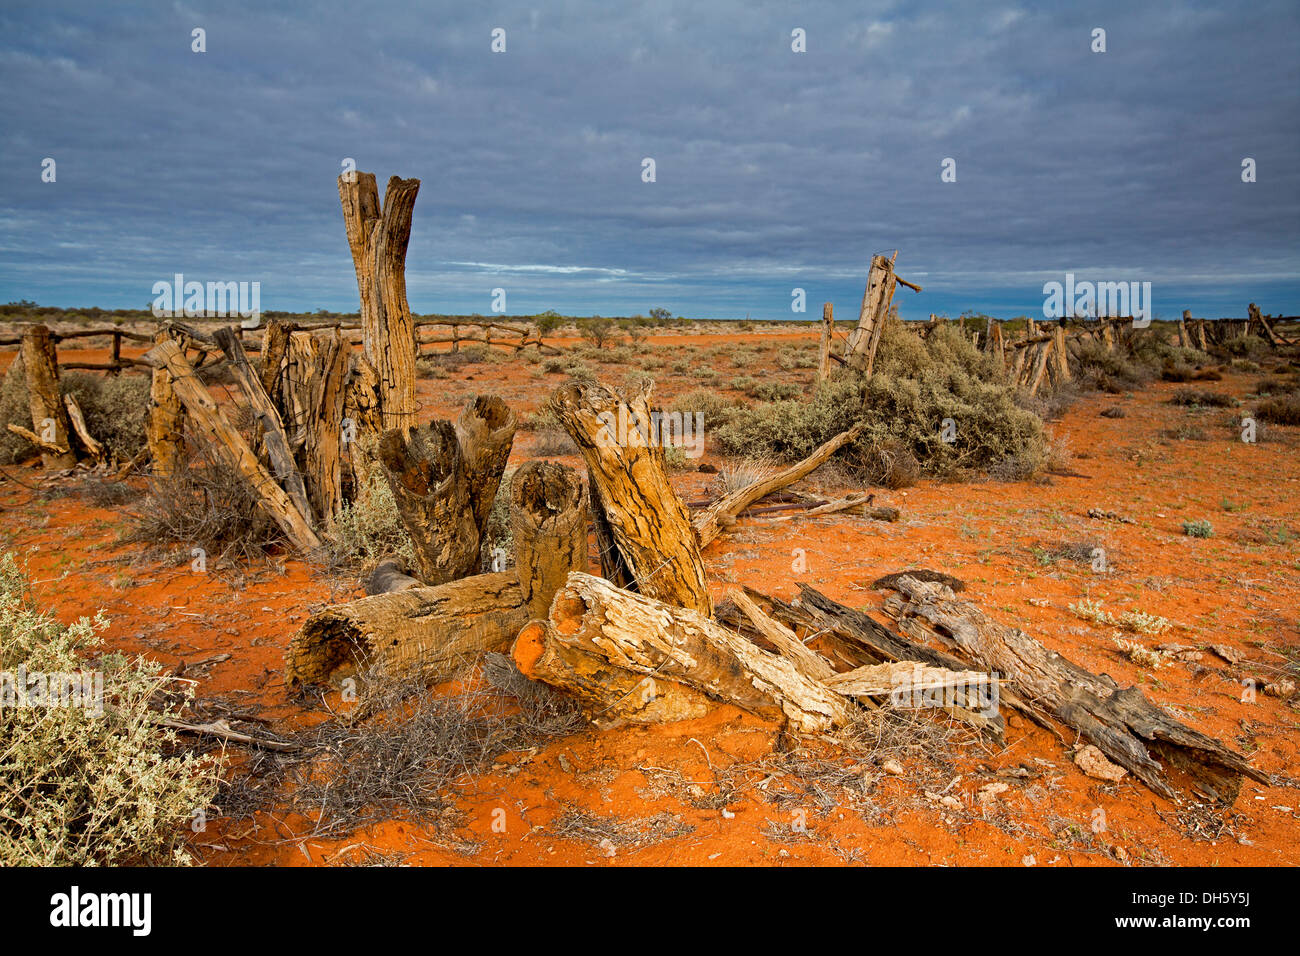 Outback landscape with ruins of historic stock yards on vast red plains stretching to distant horizon near Oodnadatta north SA - Stock Image